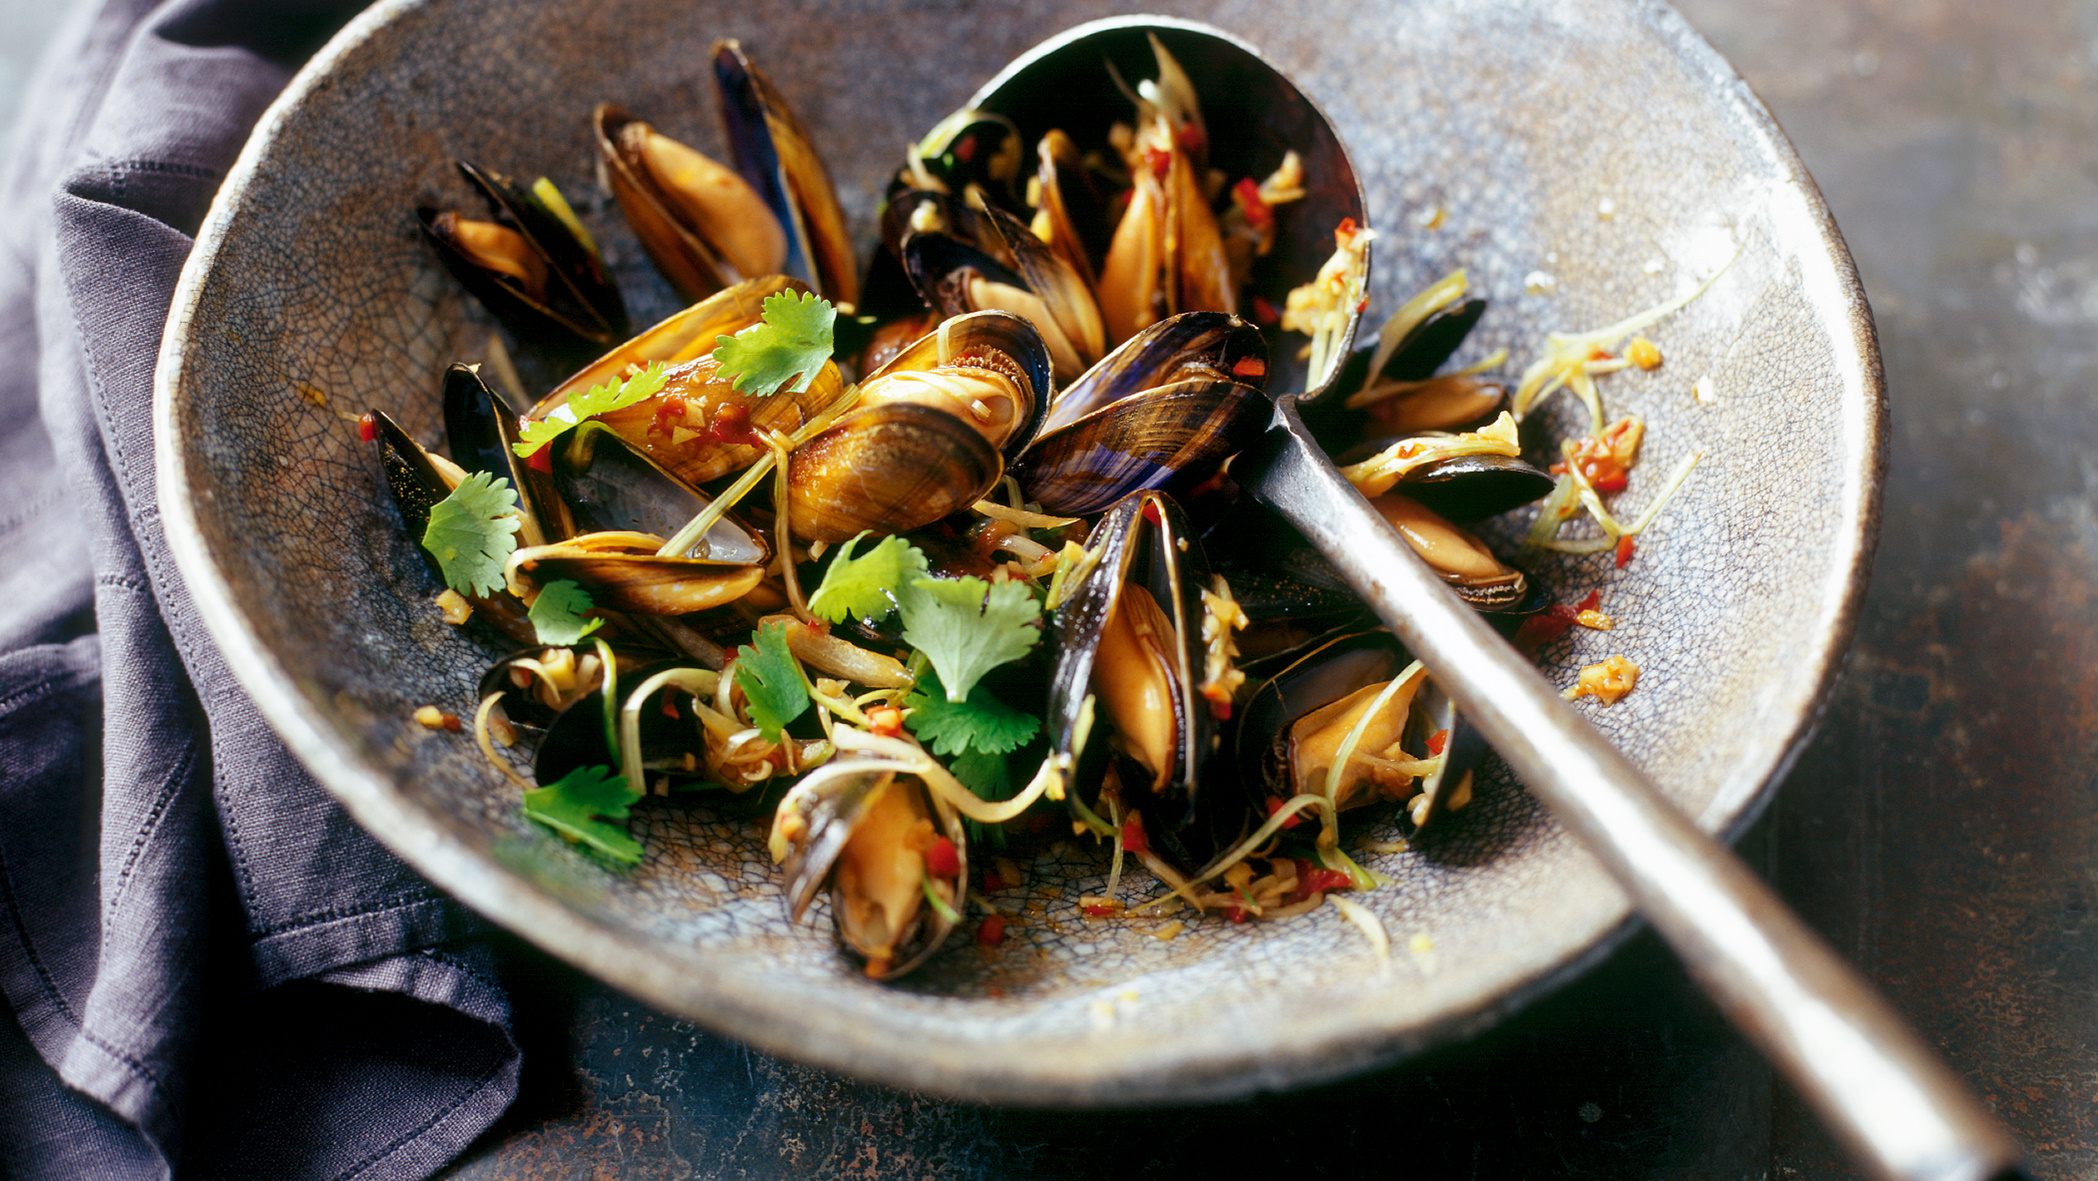 Than useful mussels